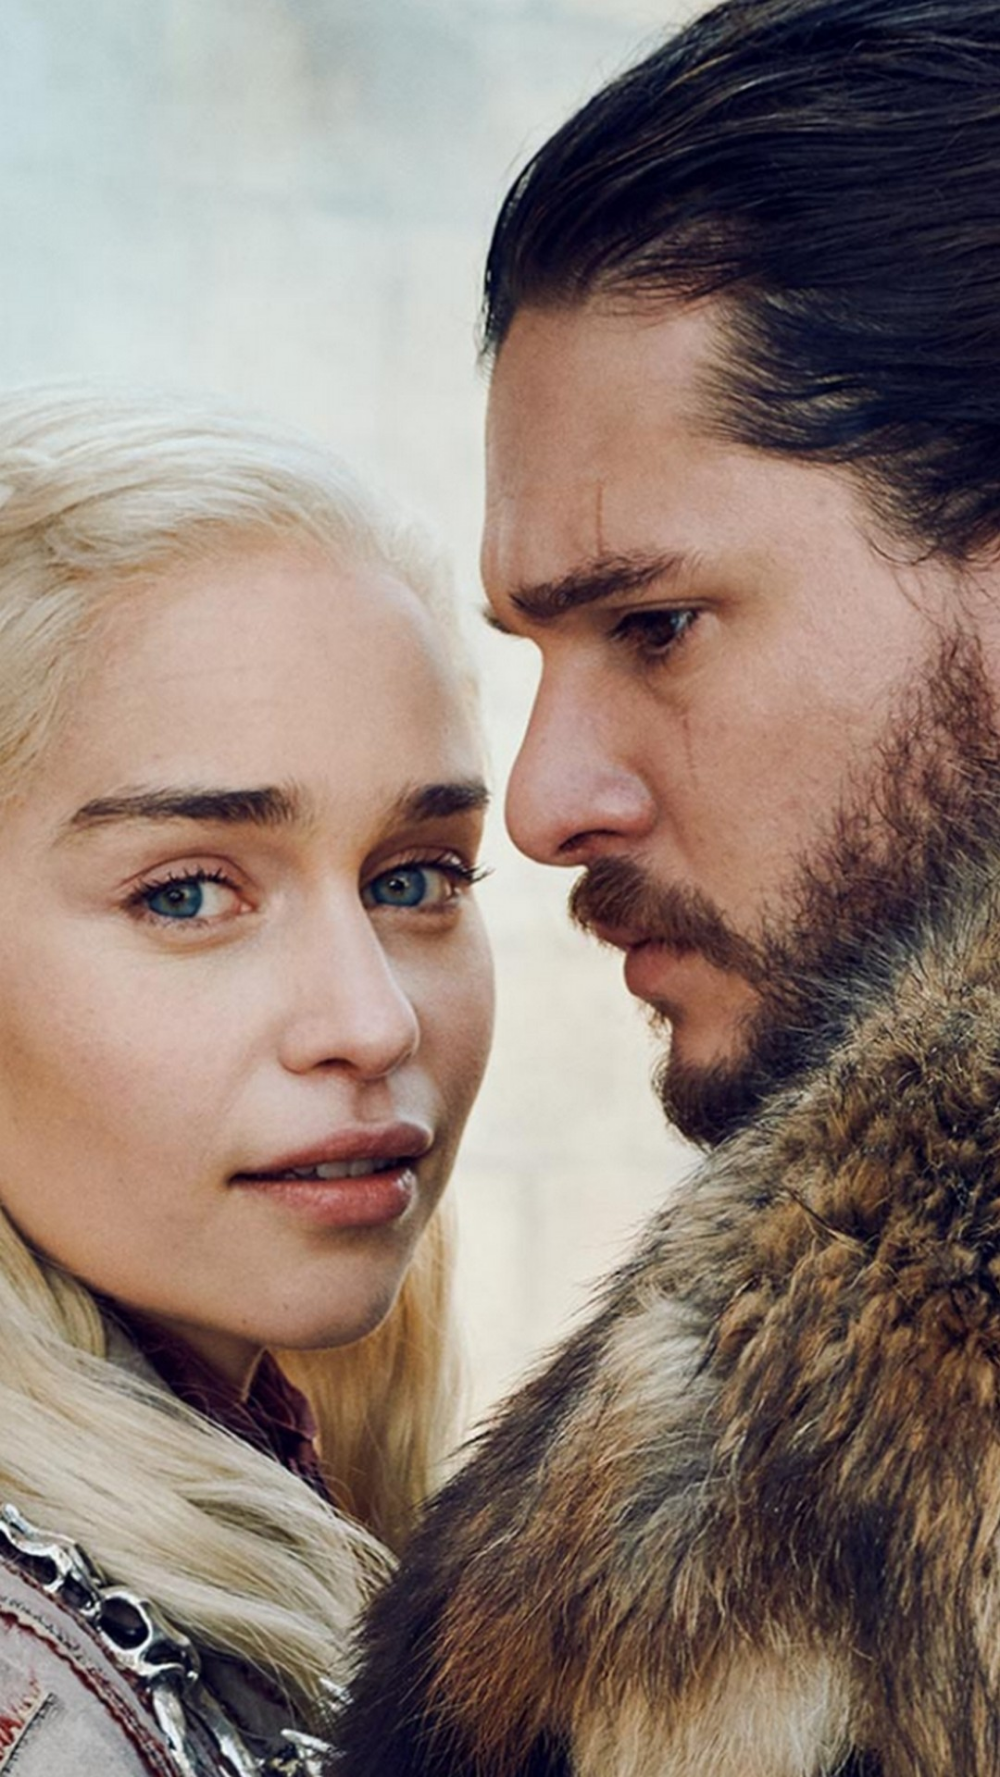 Game Of Thrones 8 Season Wallpaper For Phones With High Resolution 1080x1920 Pixel Download All Jon Snow And Daenerys Jon Snow Aesthetic Snow Wallpaper Iphone